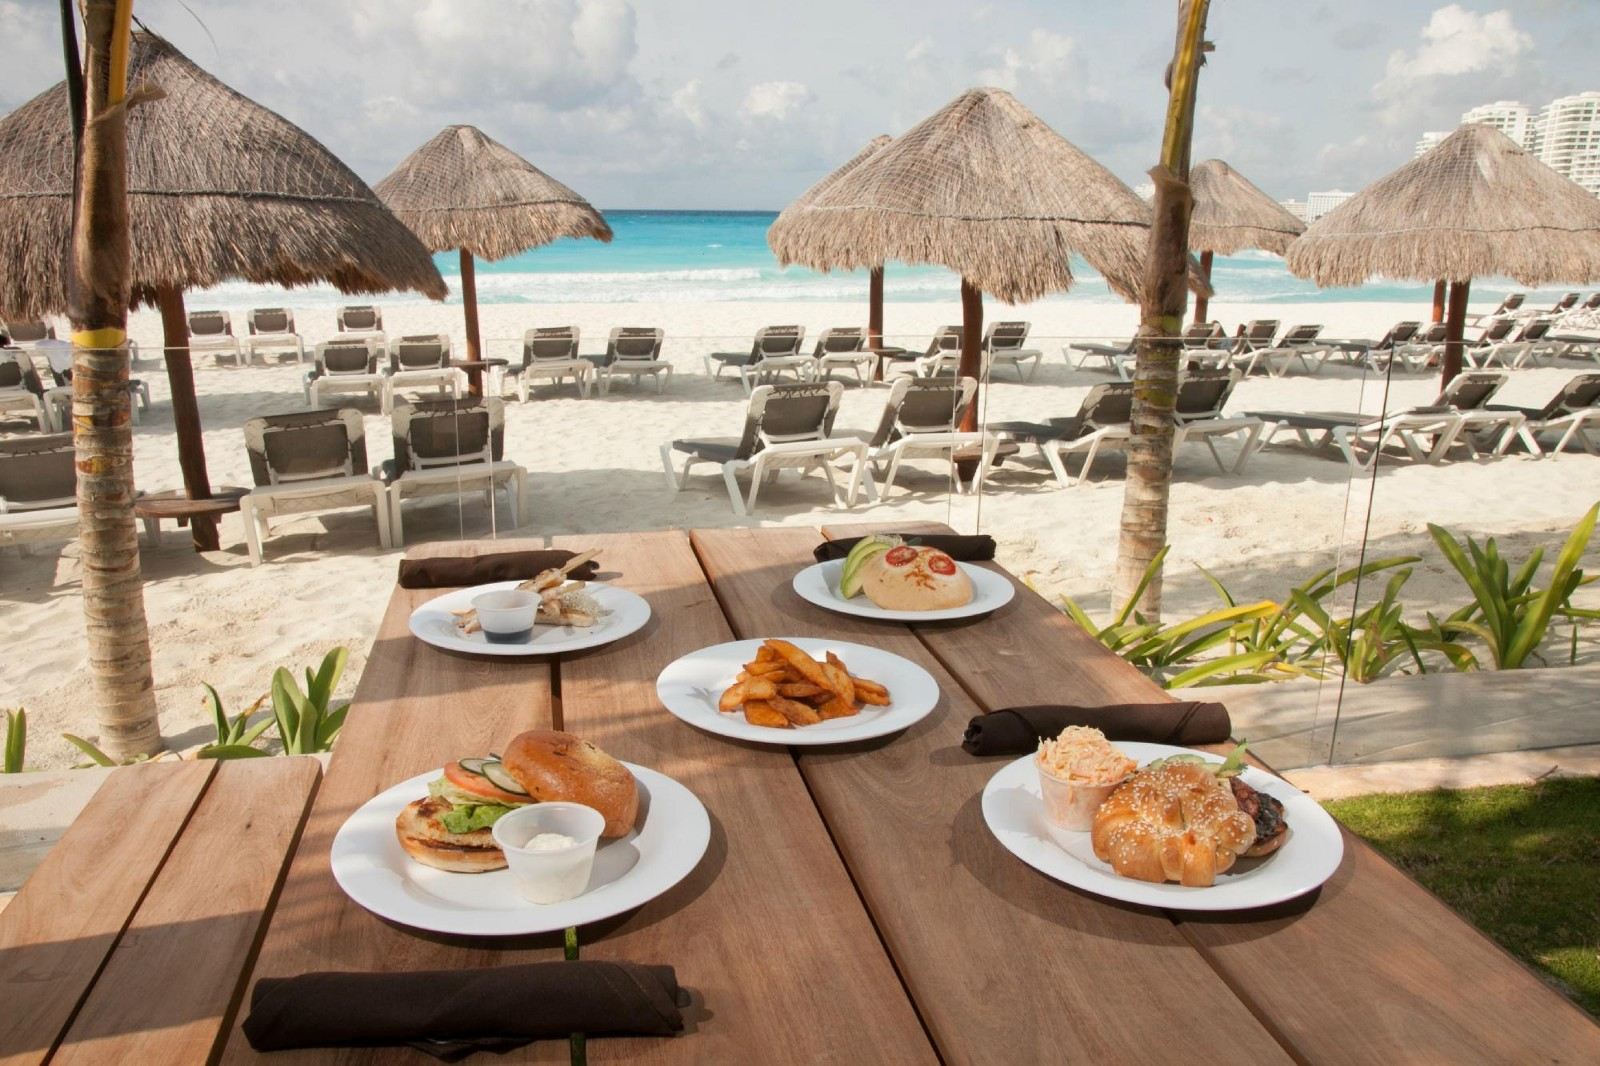 These Restaurants Are Known Either For Their Delicacies Affordable Prices Or A Beautiful Setting Visit Best Local In Cancun And Have